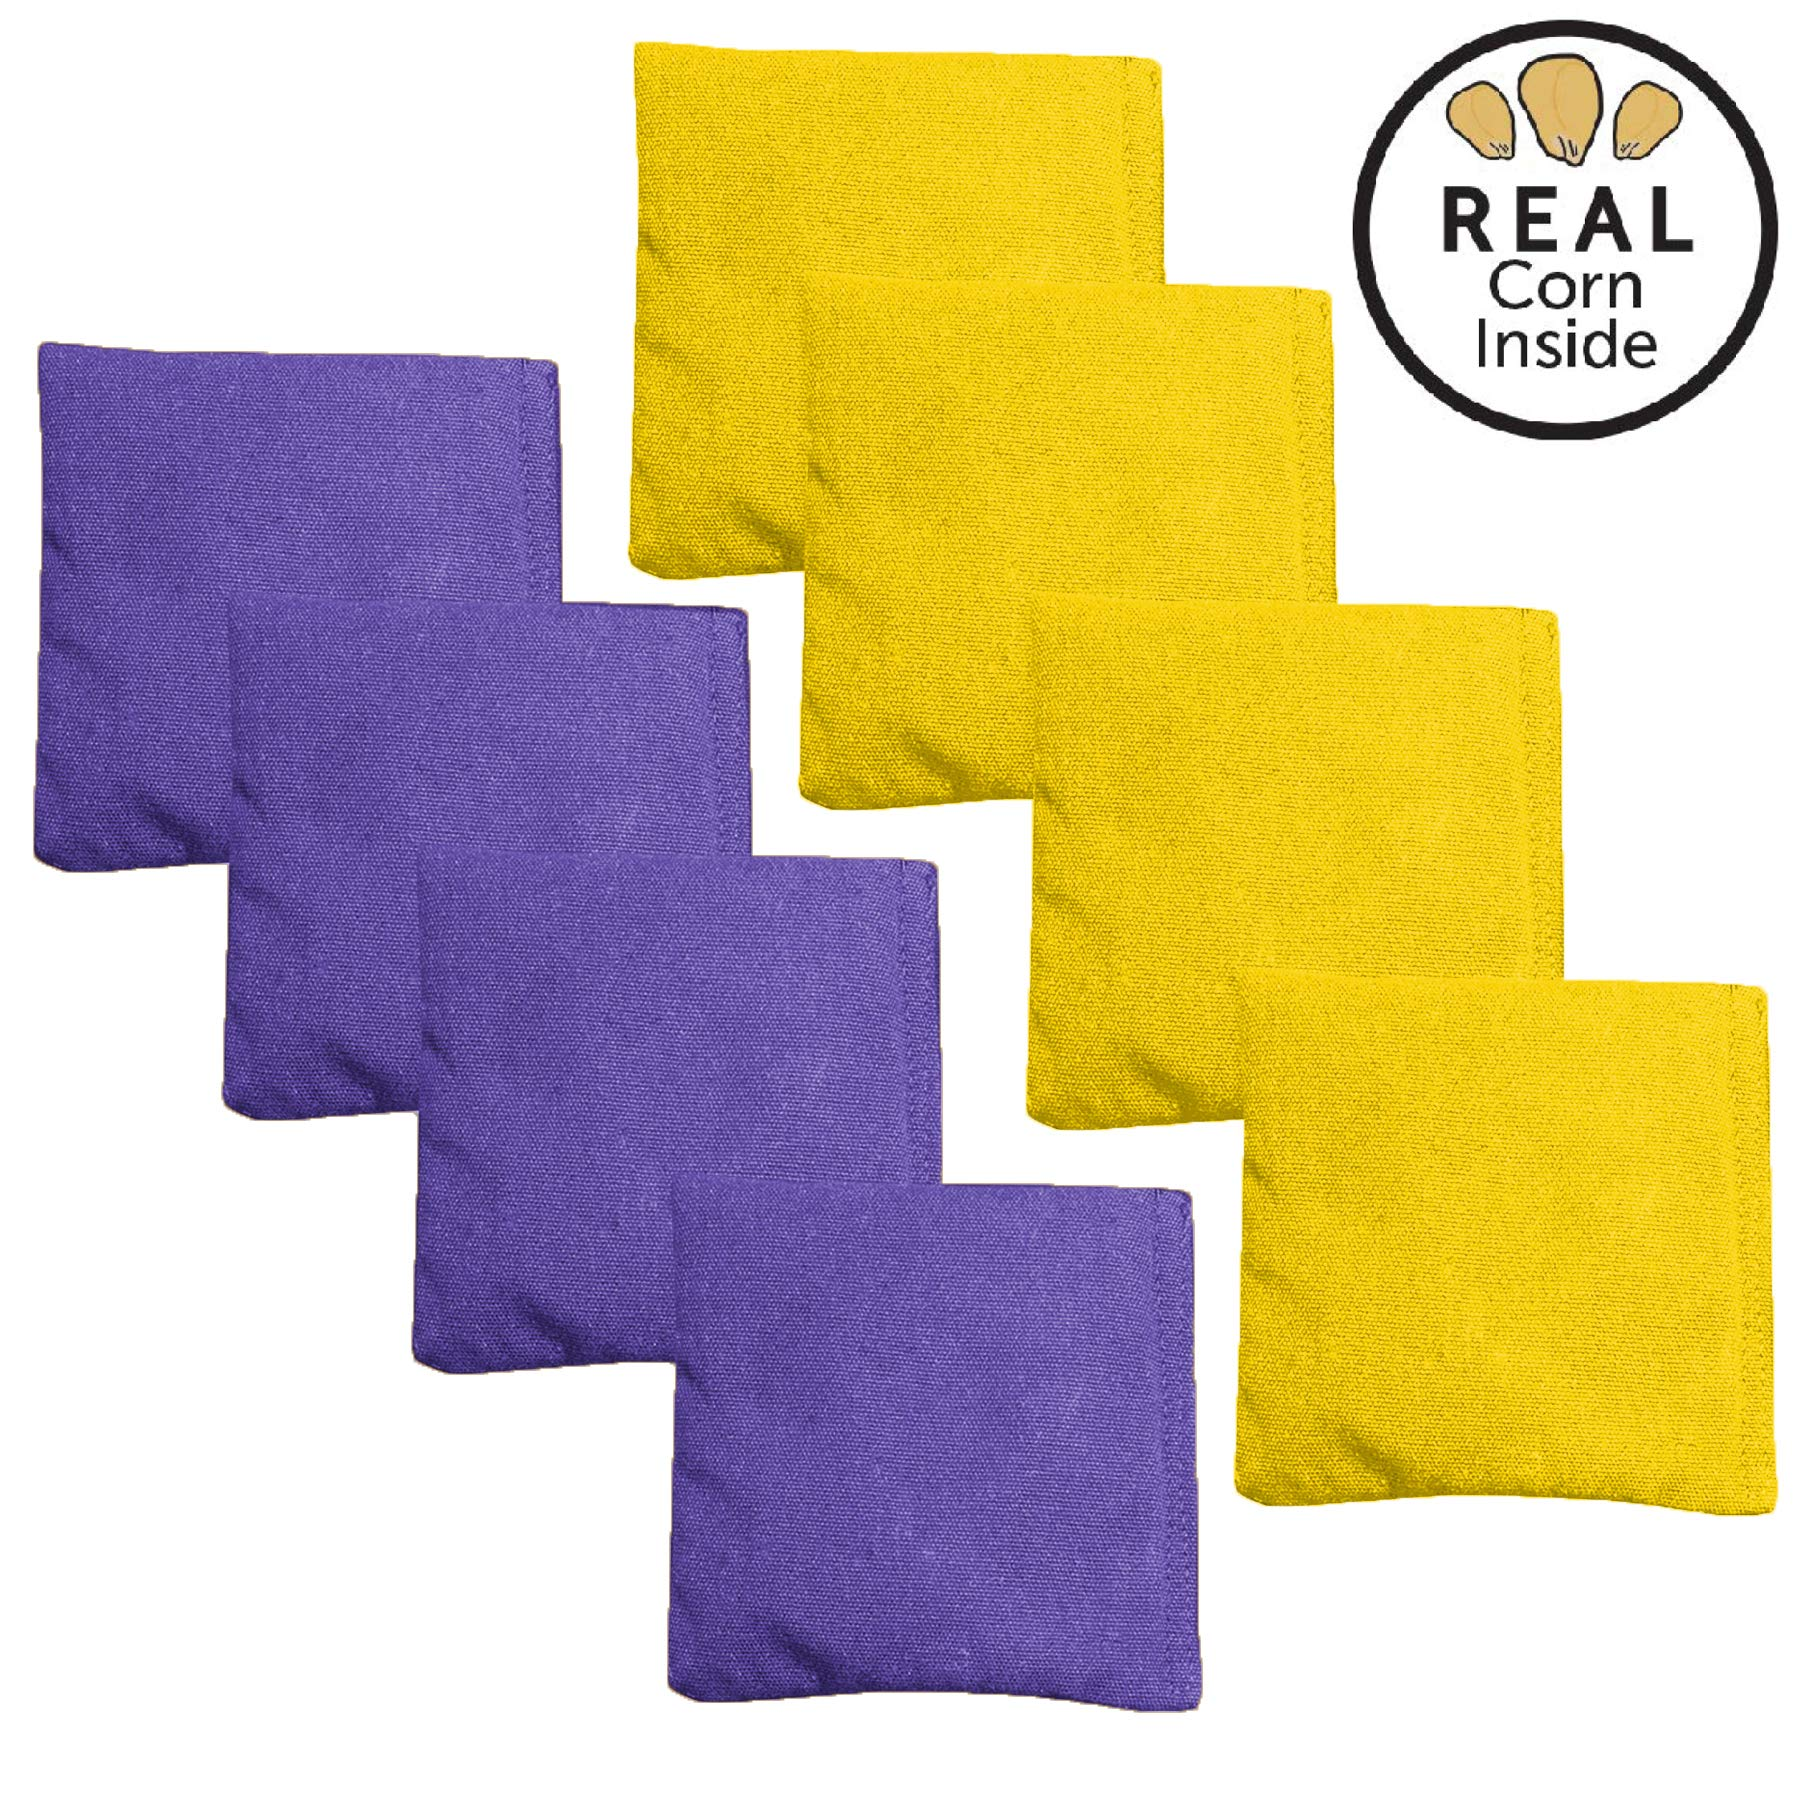 Corn Filled Cornhole Bags - Set of 8 Bean Bags for Corn Hole Game - Regulation Size & Weight - Purple & Yellow by Play Platoon